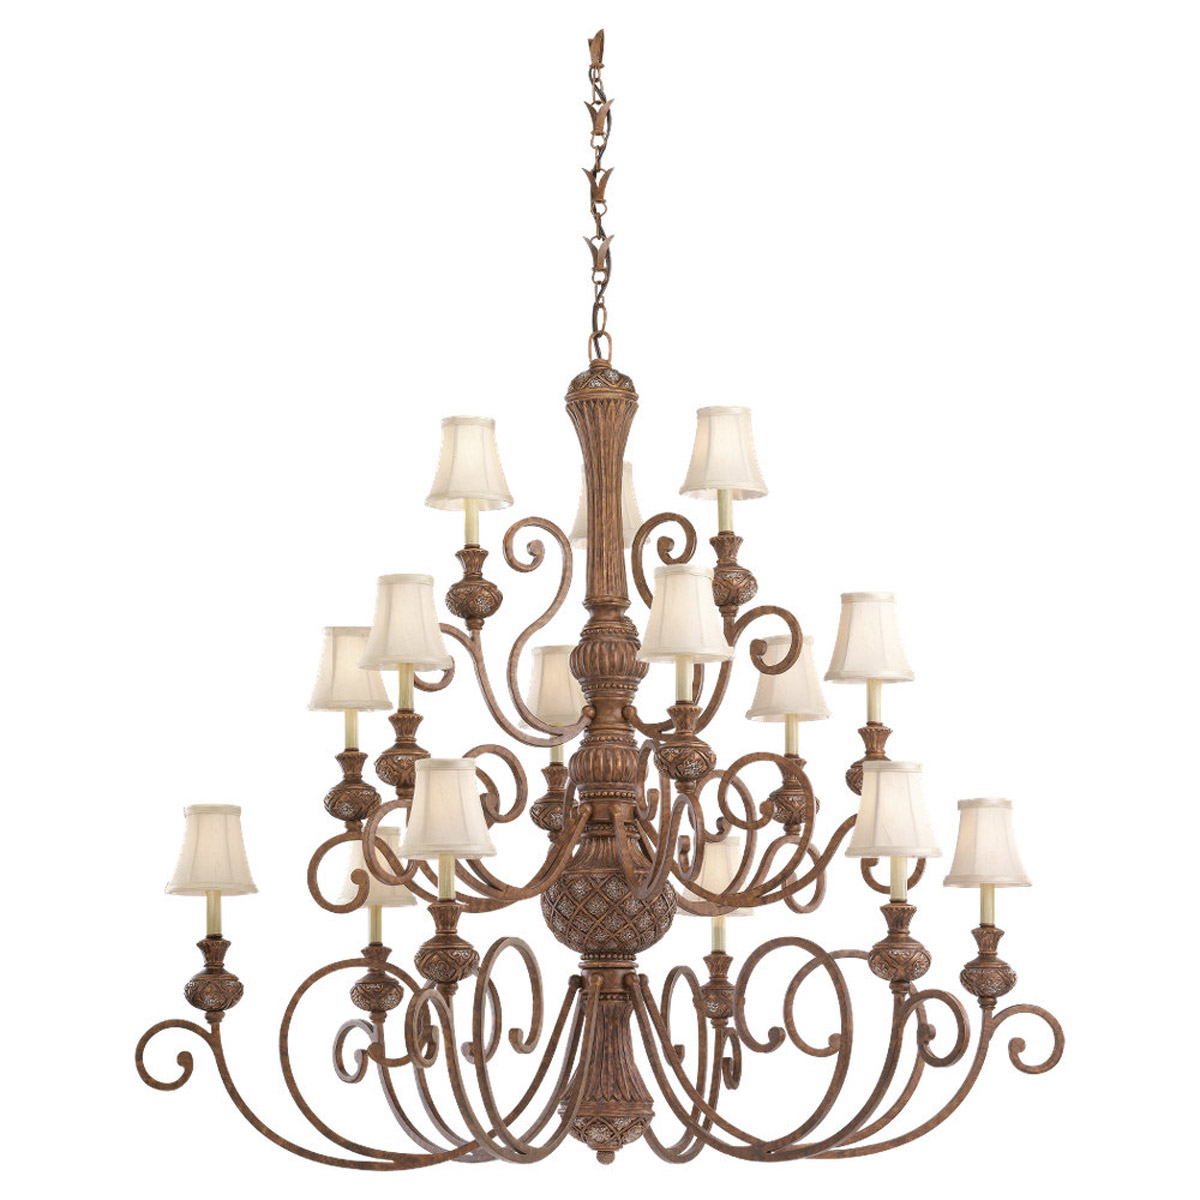 Sea Gull Lighting Highlands 15 Light Chandelier in Regal Bronze 31253-758 photo